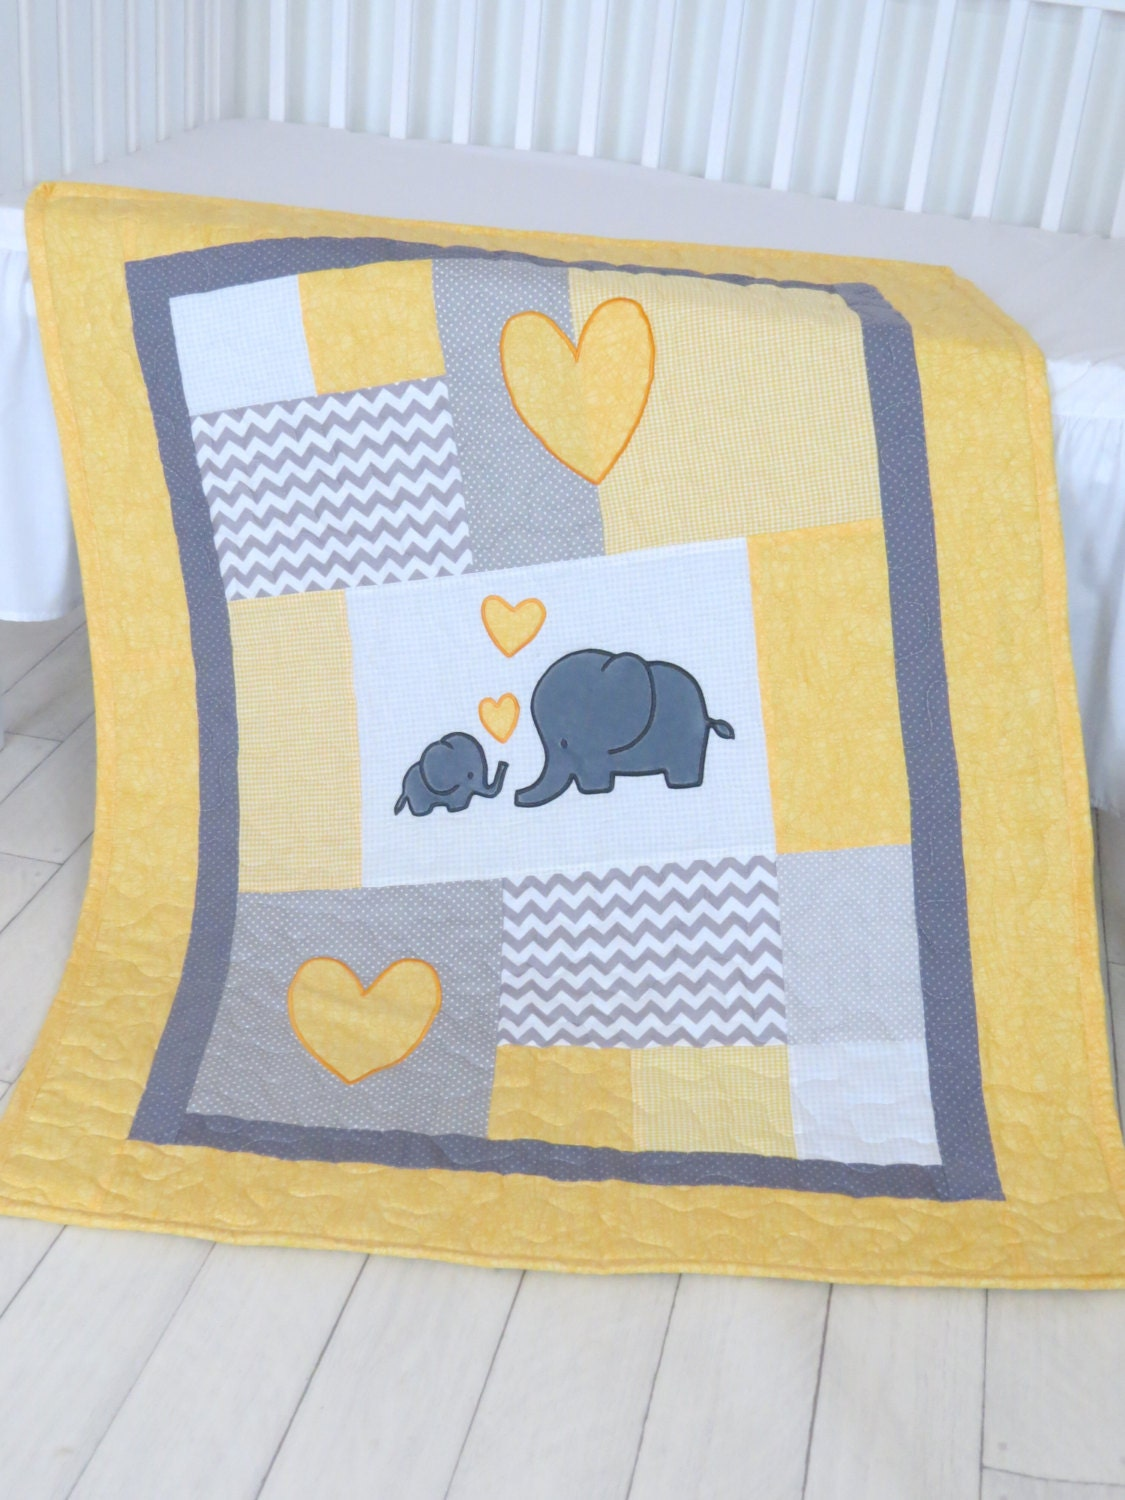 Twin Baby Quilts Elephant Crib Bedding Turquoise Blue Yellow And Gray Blanket Chevron Blankets Toddler Patchwork Bespreads